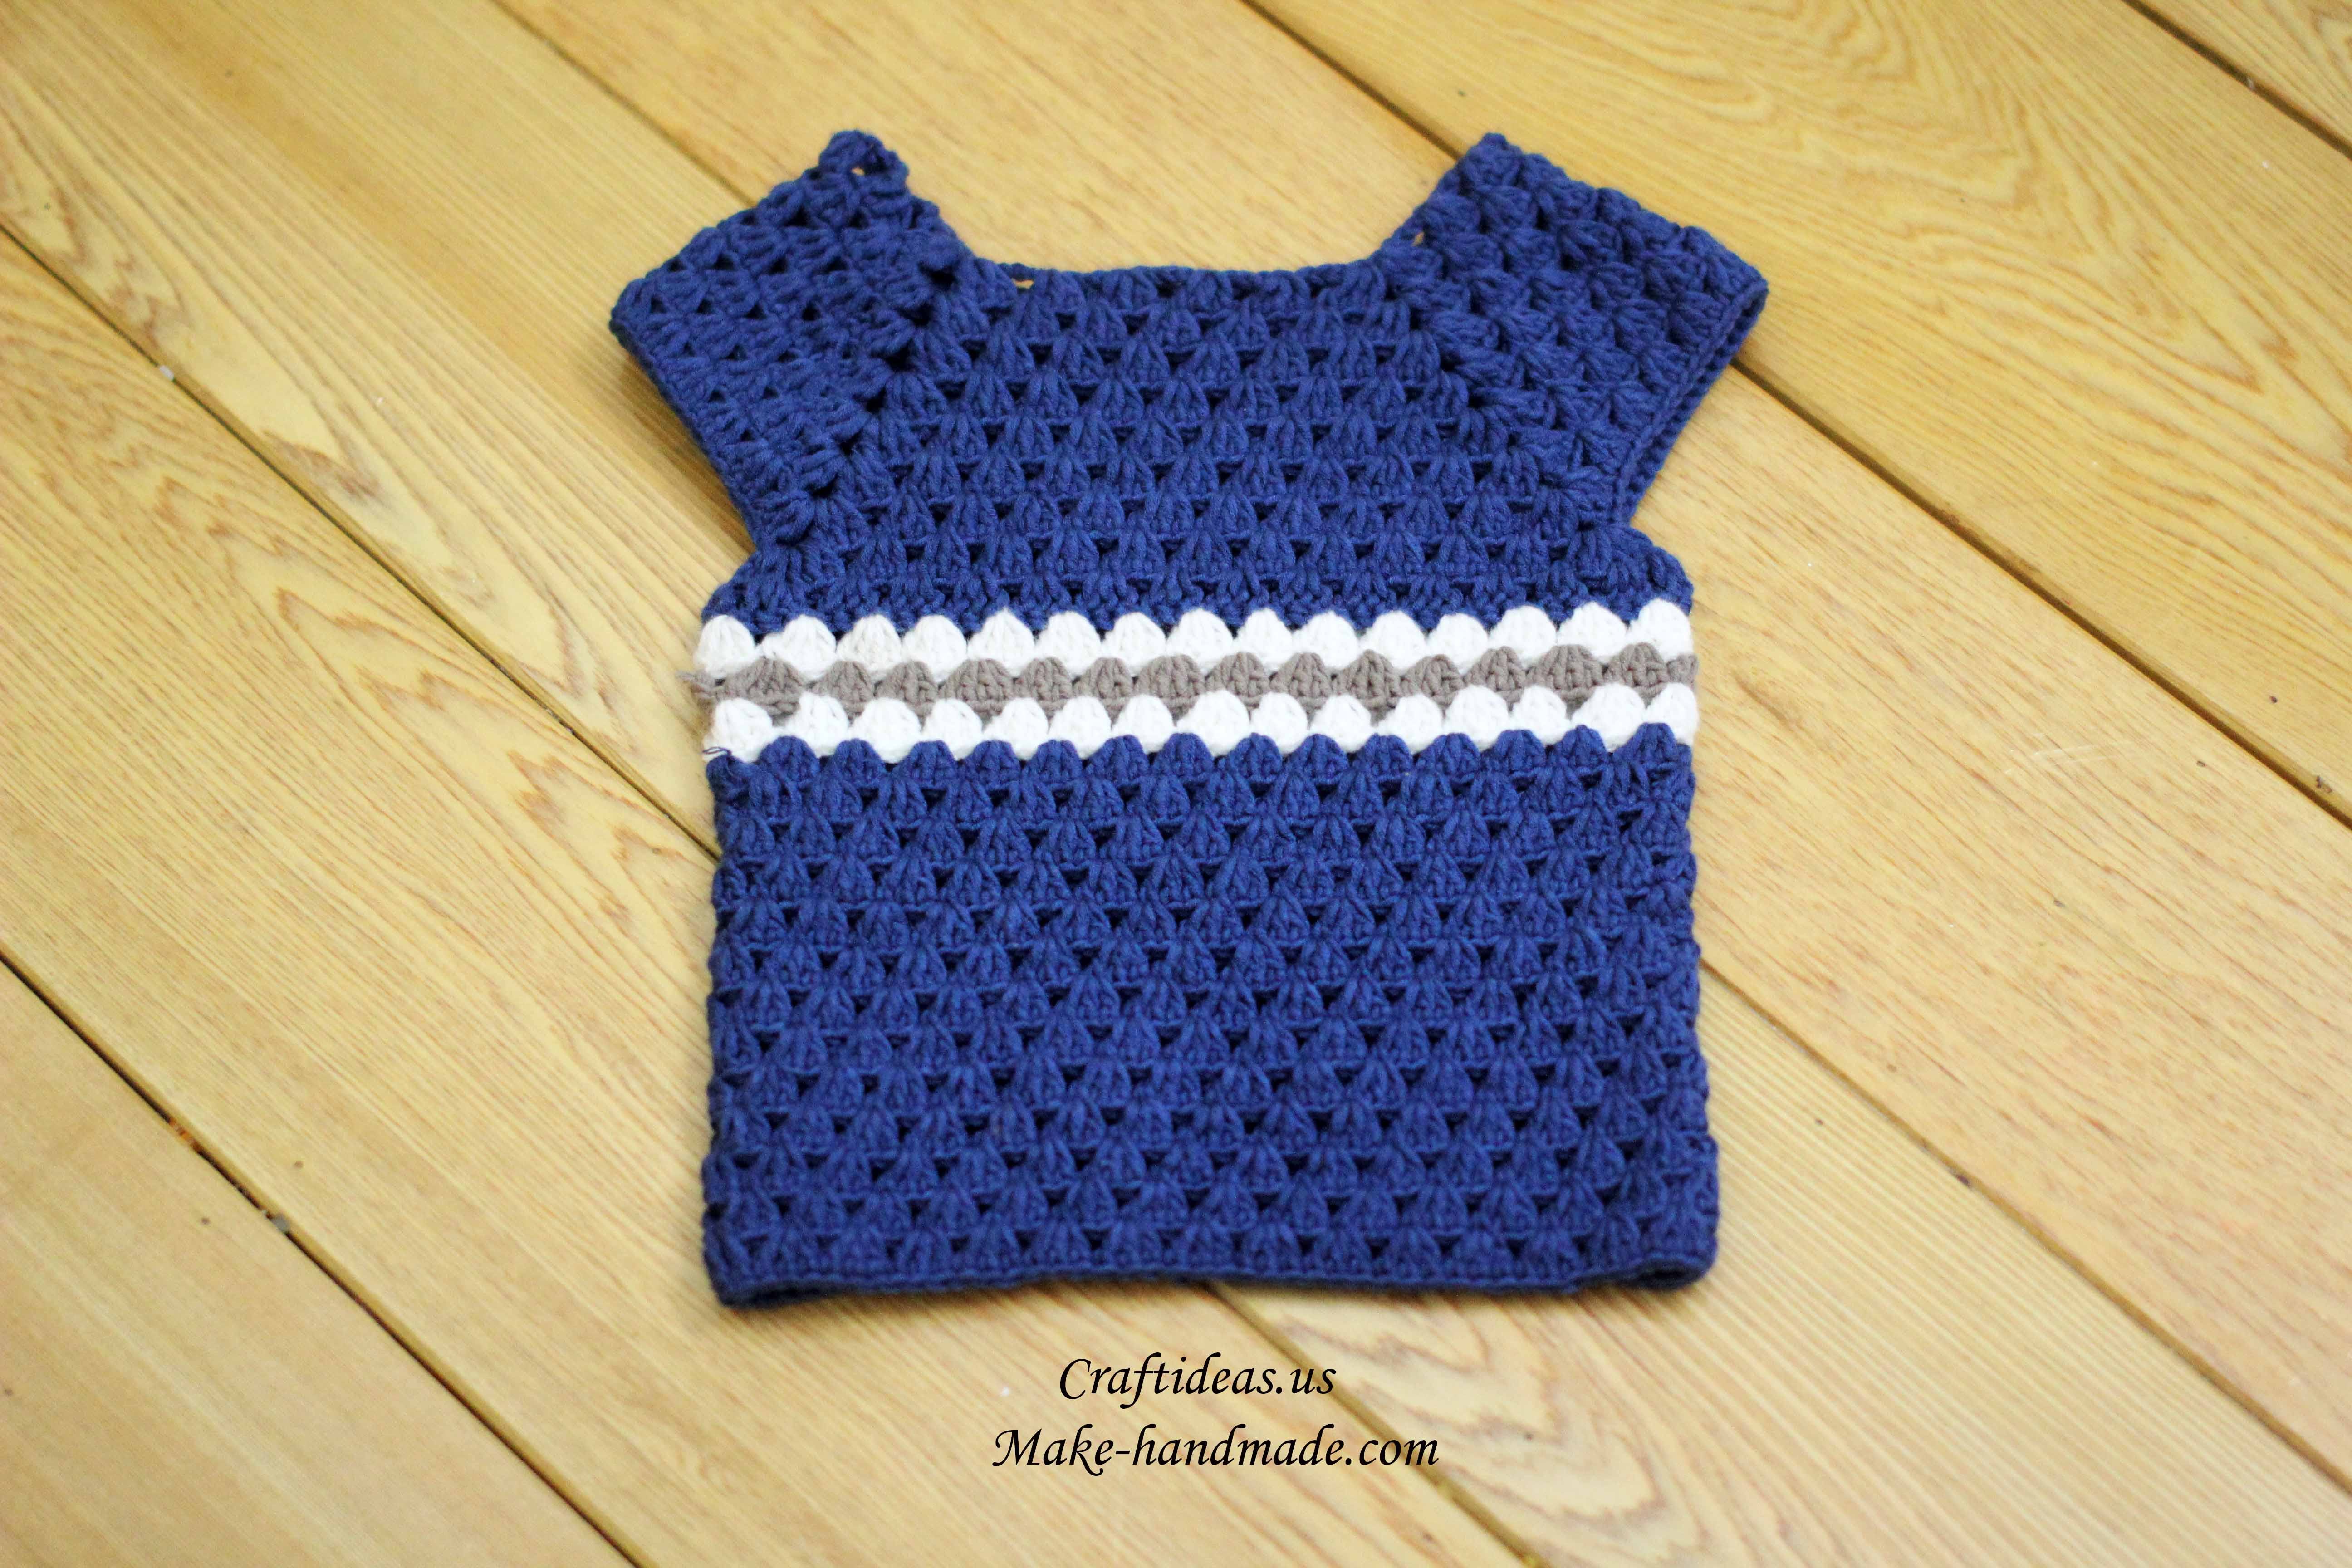 Crochet Baby Boy Gilet Idea Craft Ideas